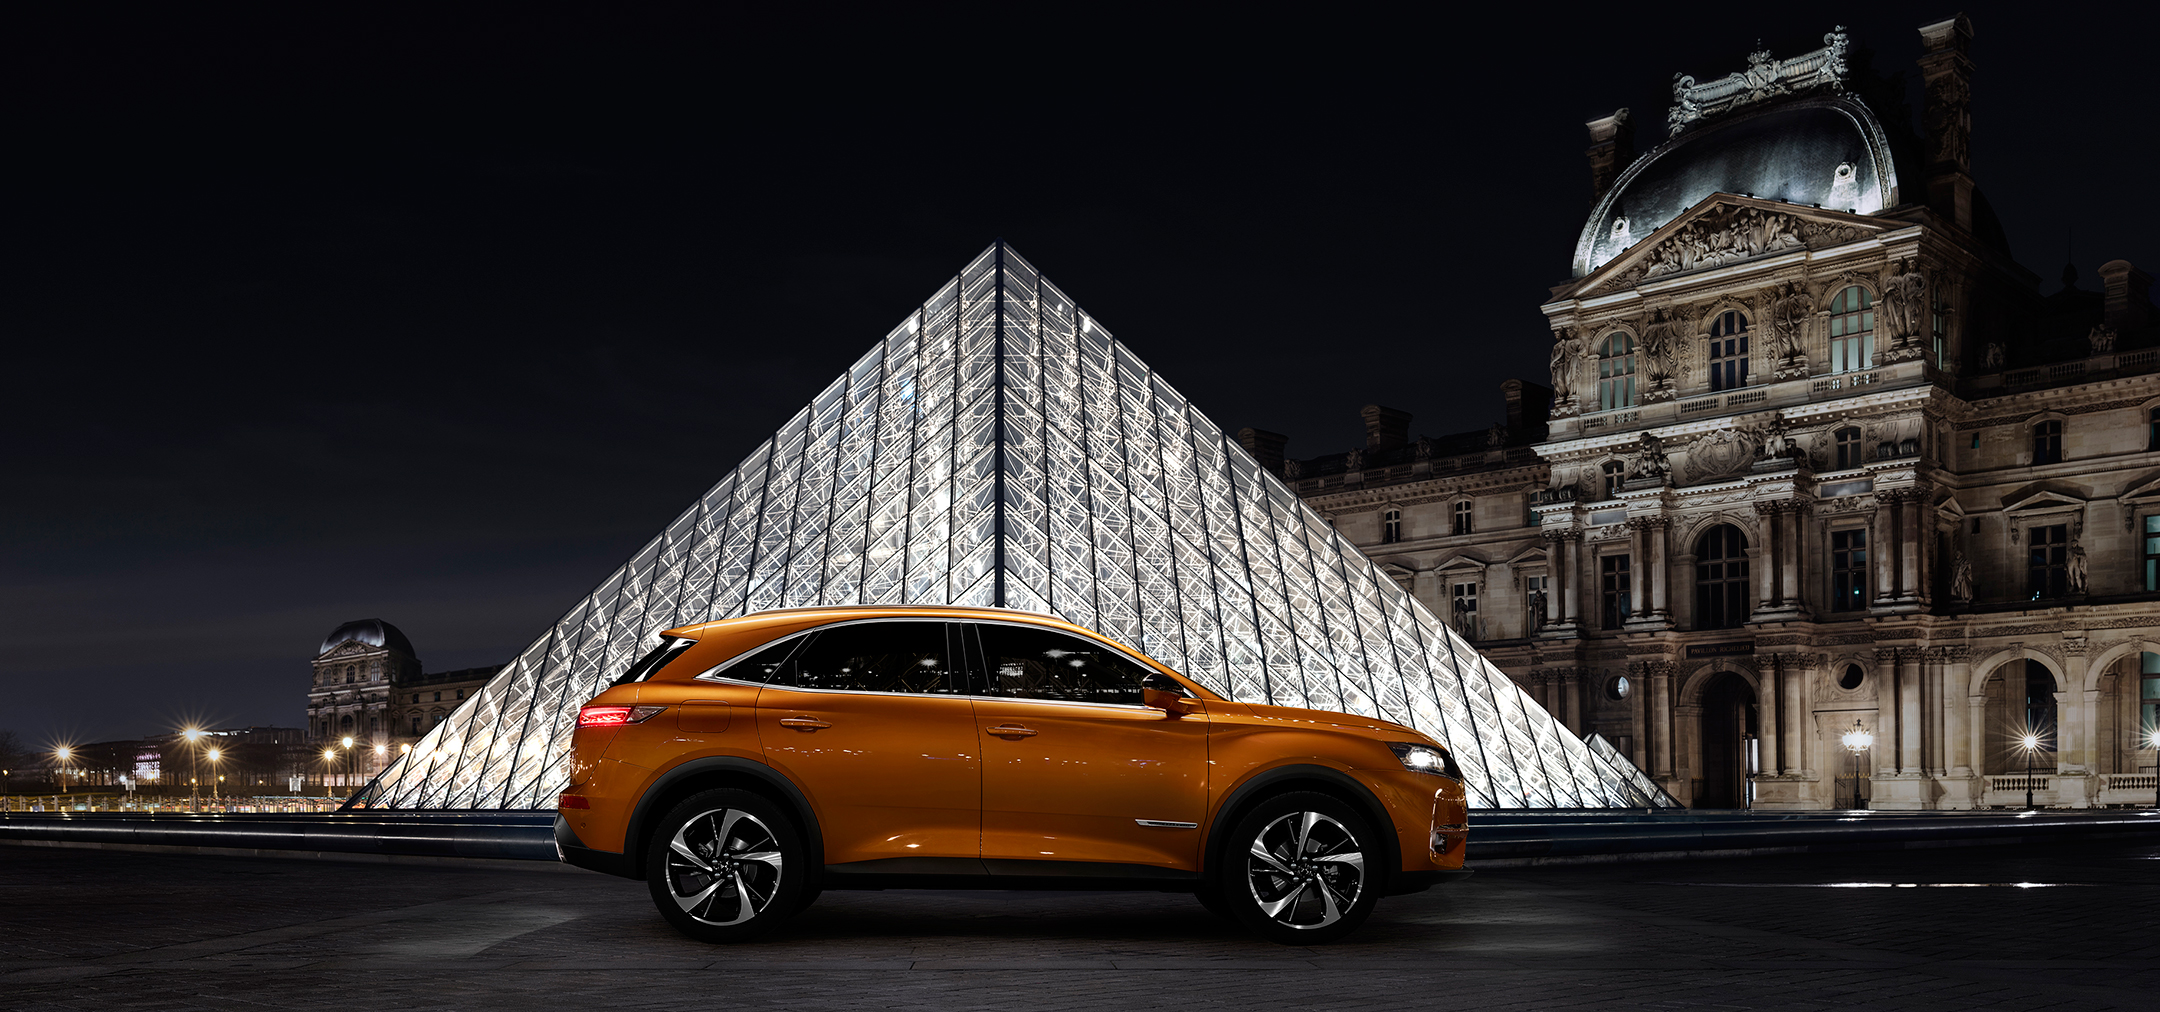 DS 7 CROSSBACK - 2017 - profil / side-face - photo Pyramide du Louvre